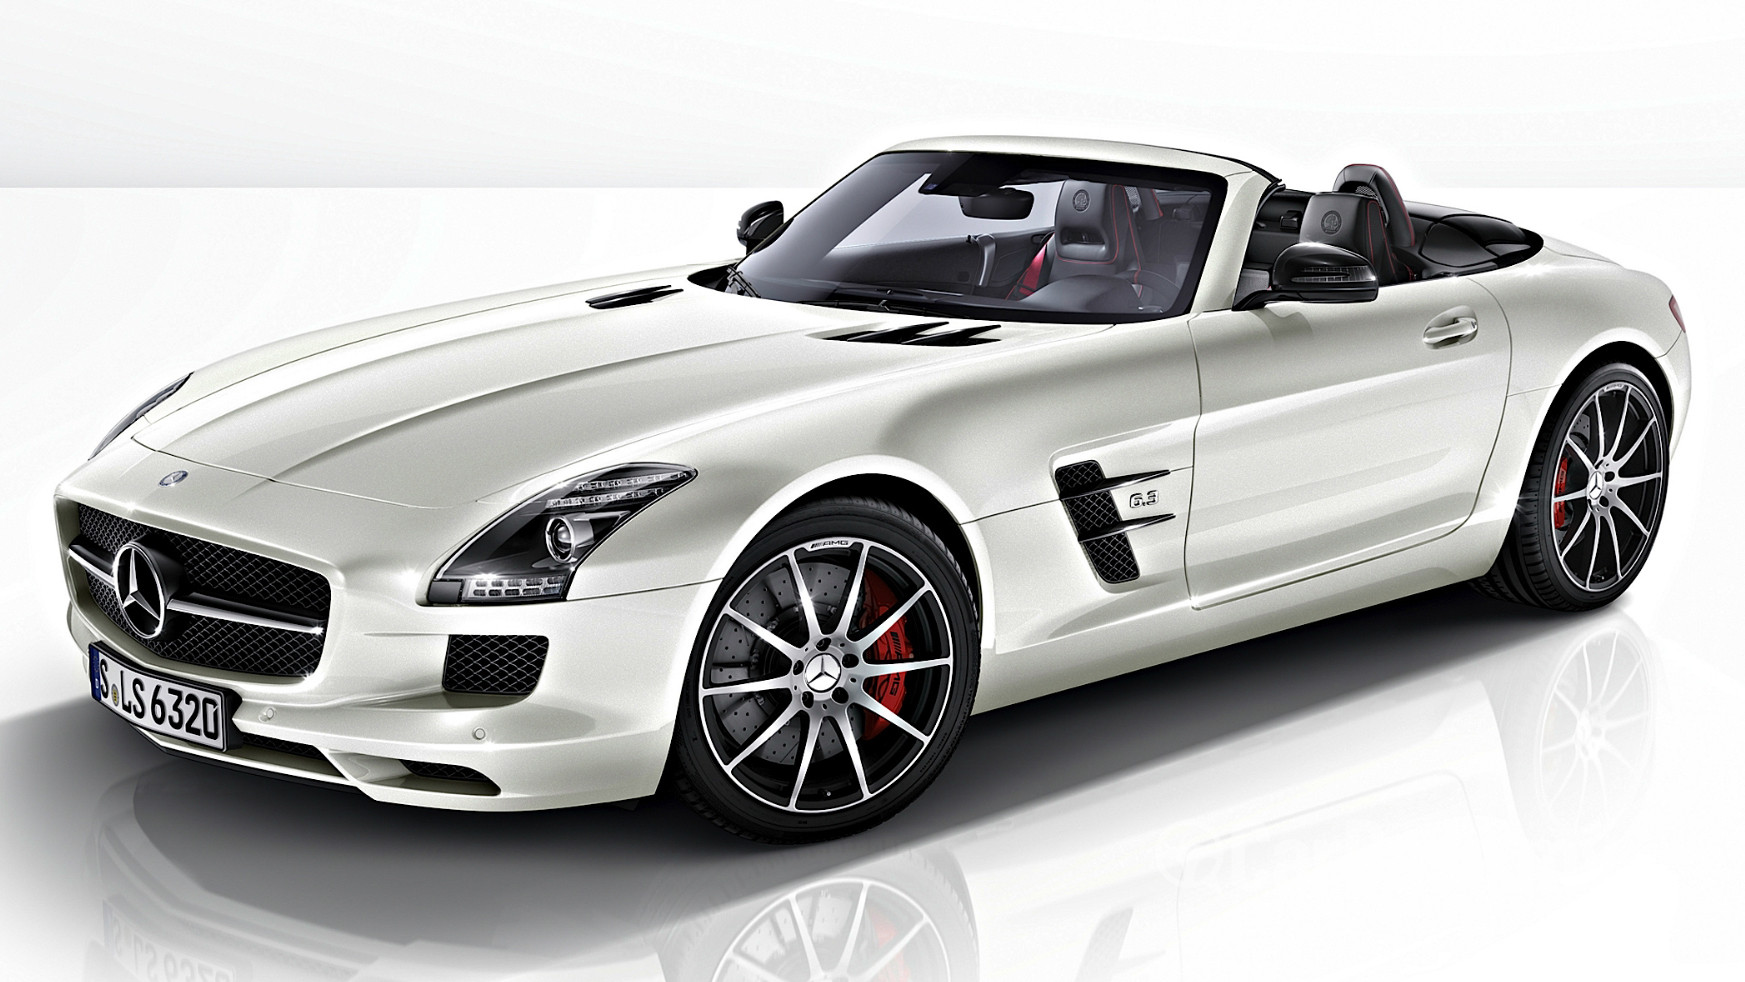 Mercedes benz sls amg roadster r197 2010 exterior image for Mercedes benz list price